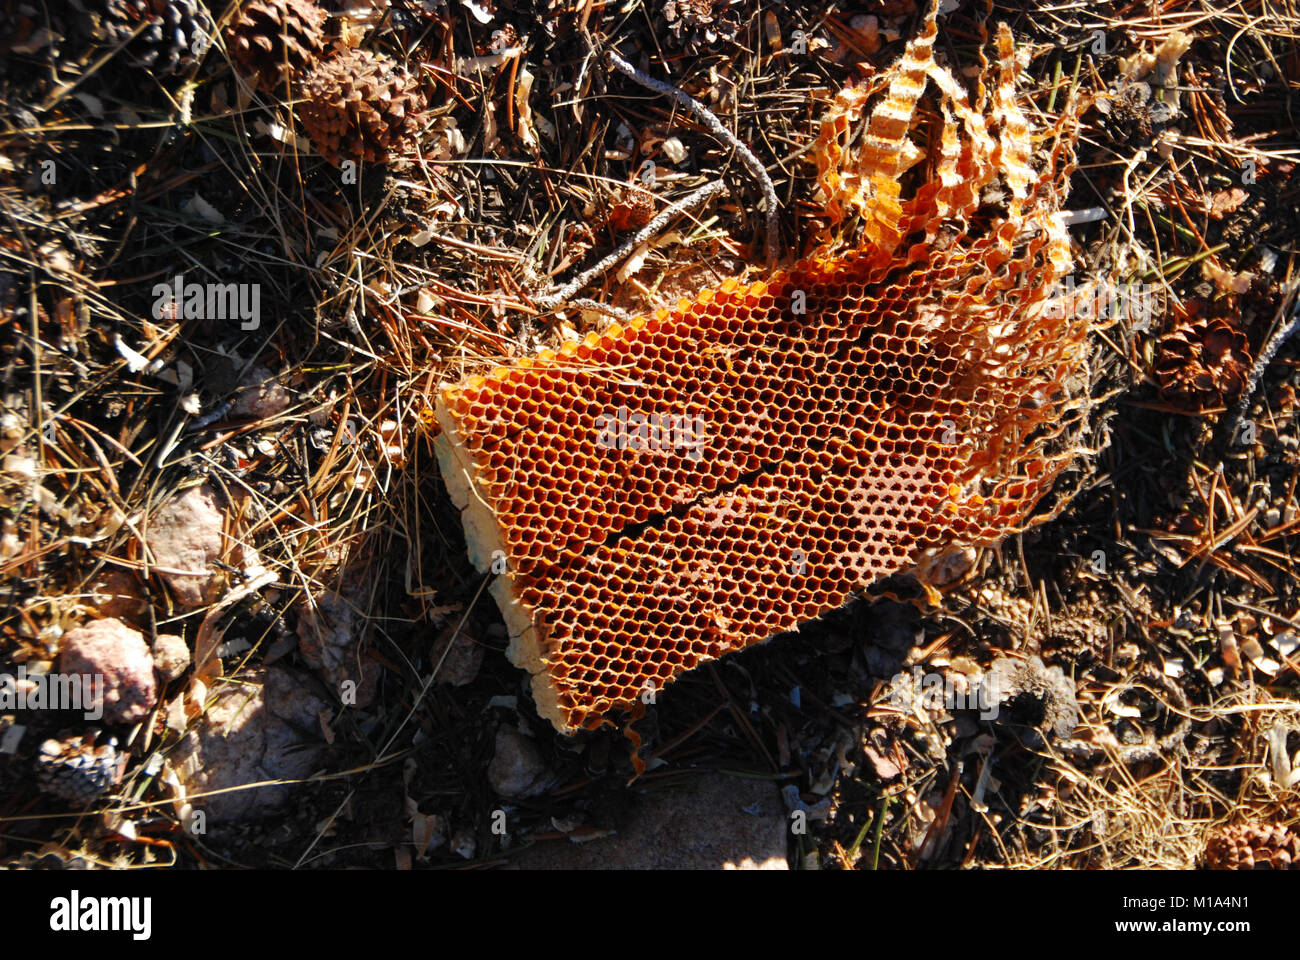 Pieces of the aircraft litter the crash site including chunks of the honeycomb material used in the stabilization - Stock Image